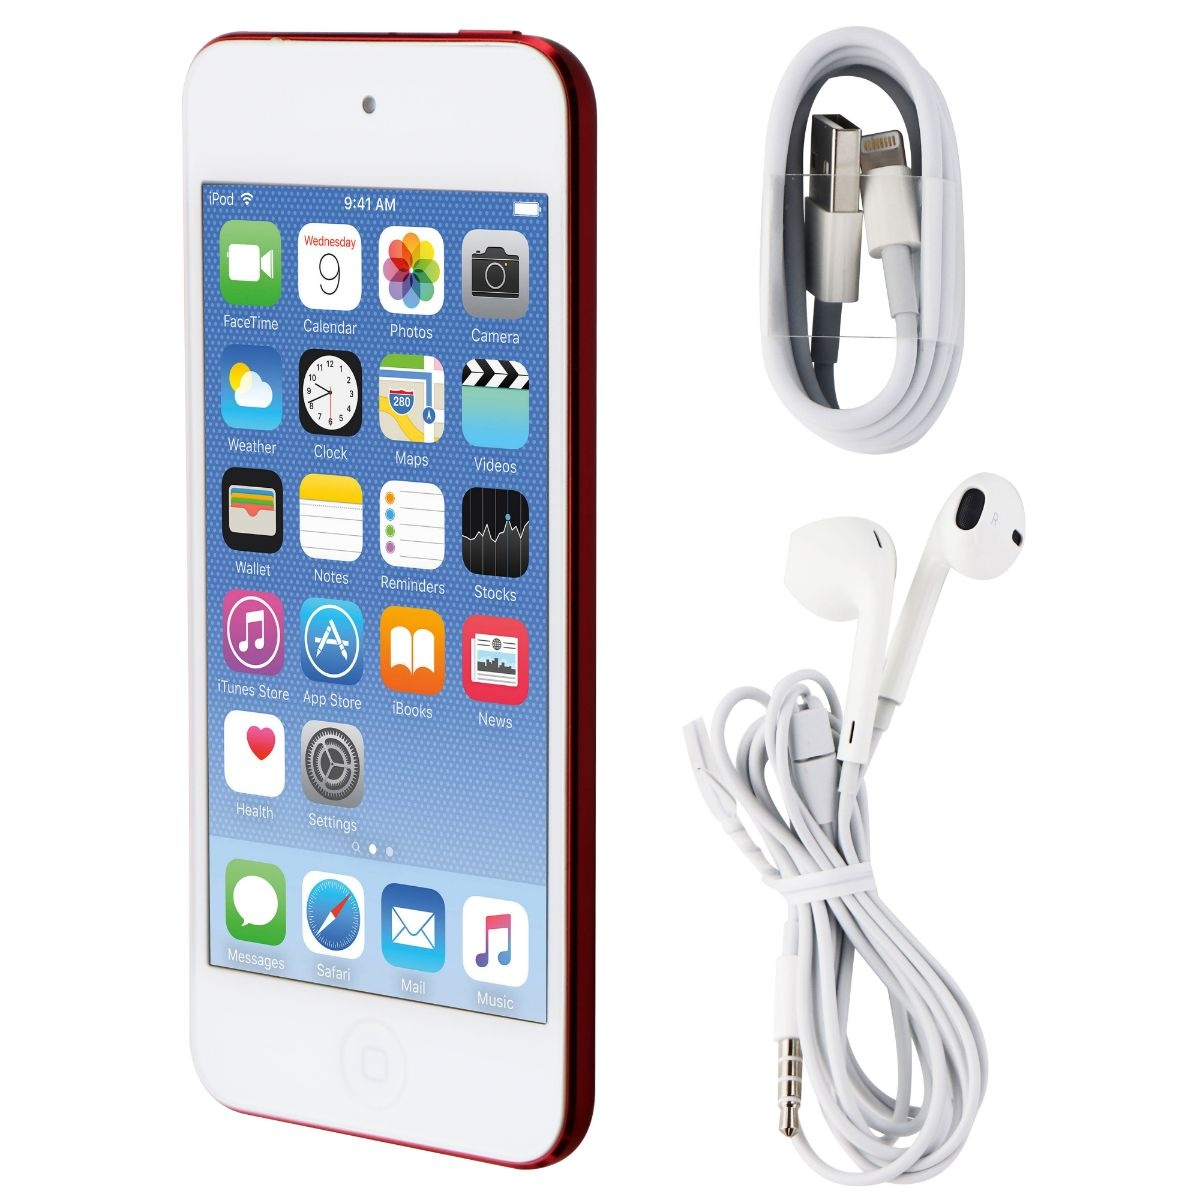 Apple iPod Touch (6th Gen) Wi-Fi Only (A1574) - MKH82LL/A - 16GB / Product Red